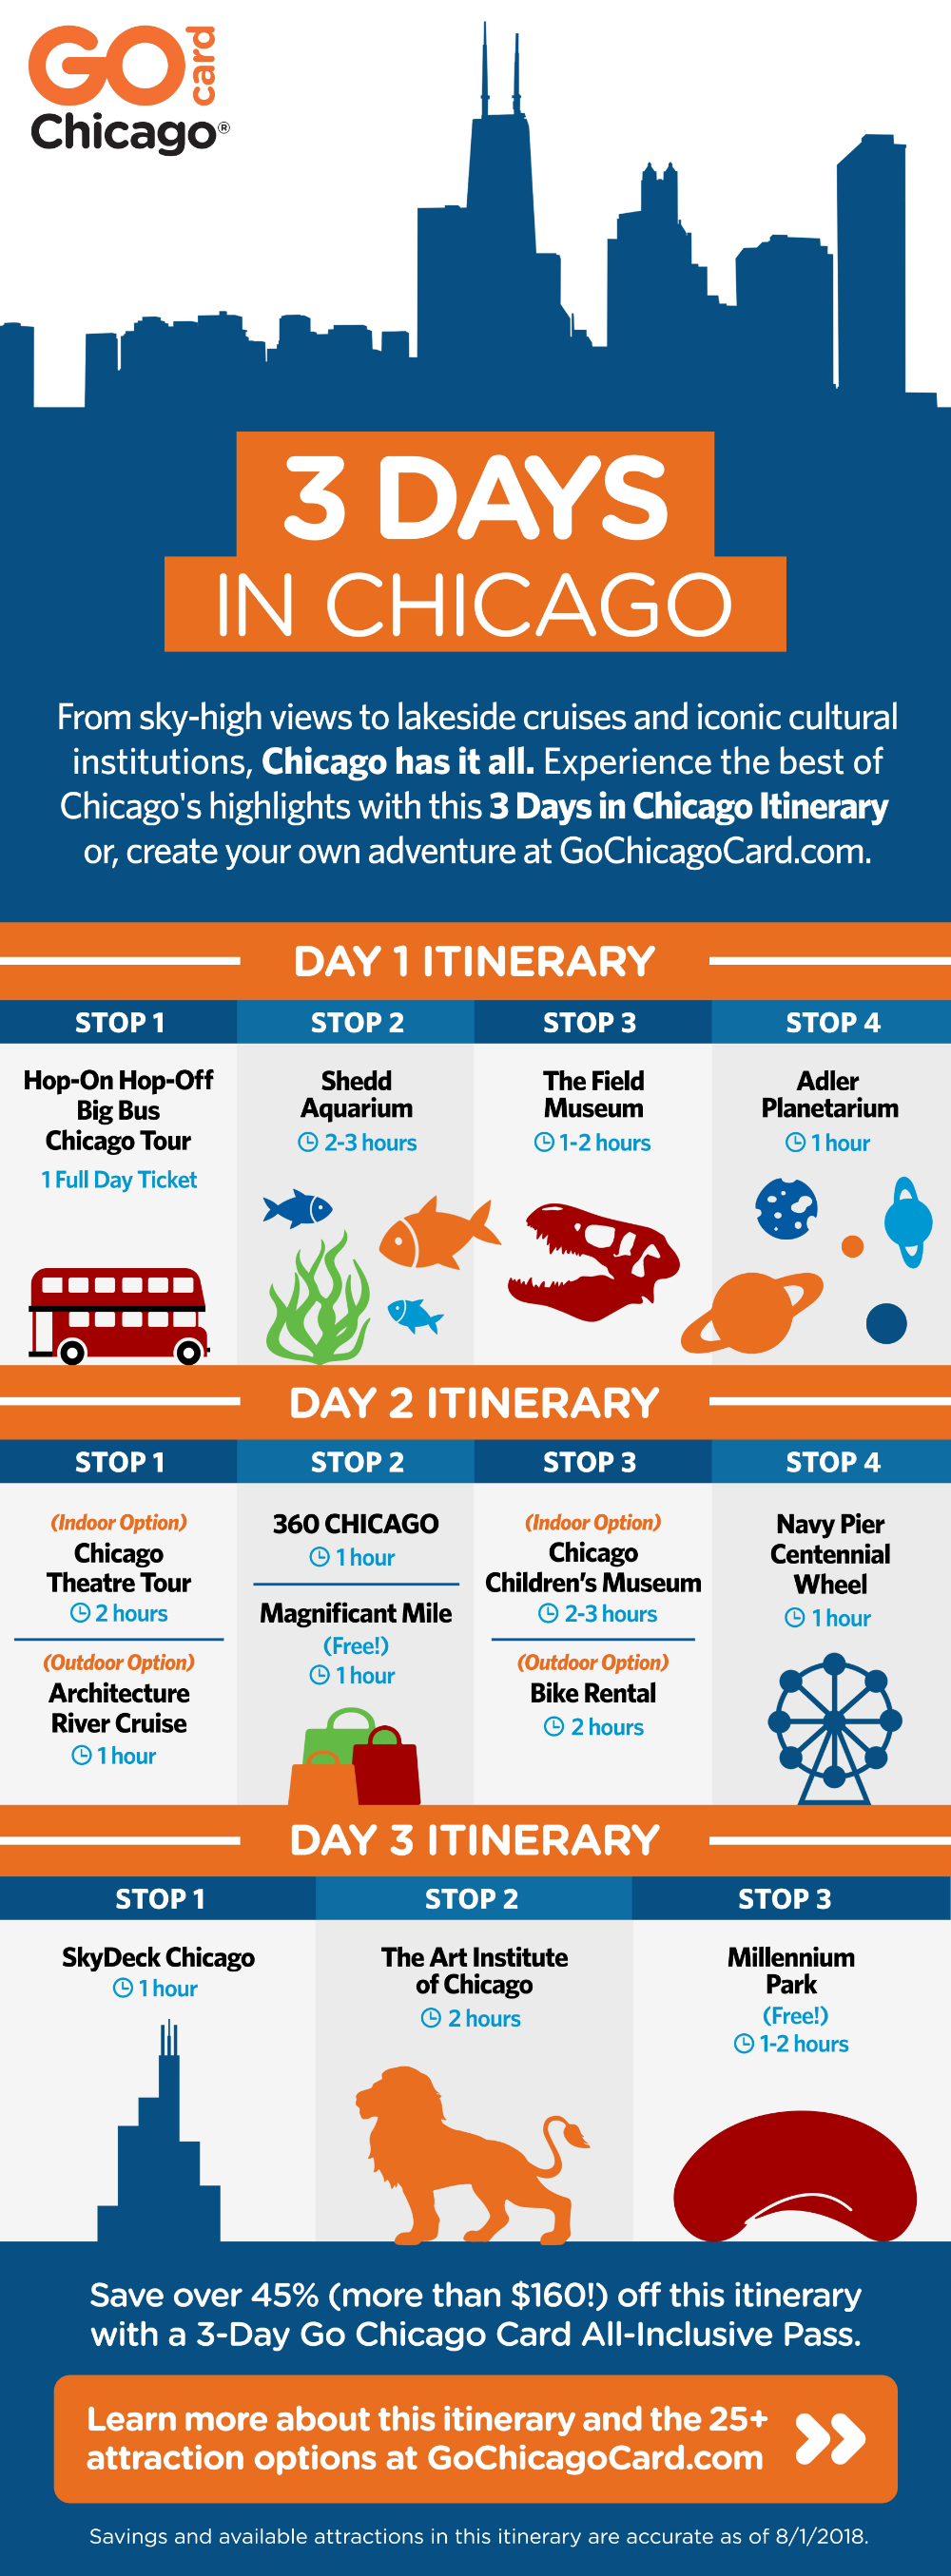 Chicago Itinerary – 3 Days in Chicago for First Timers